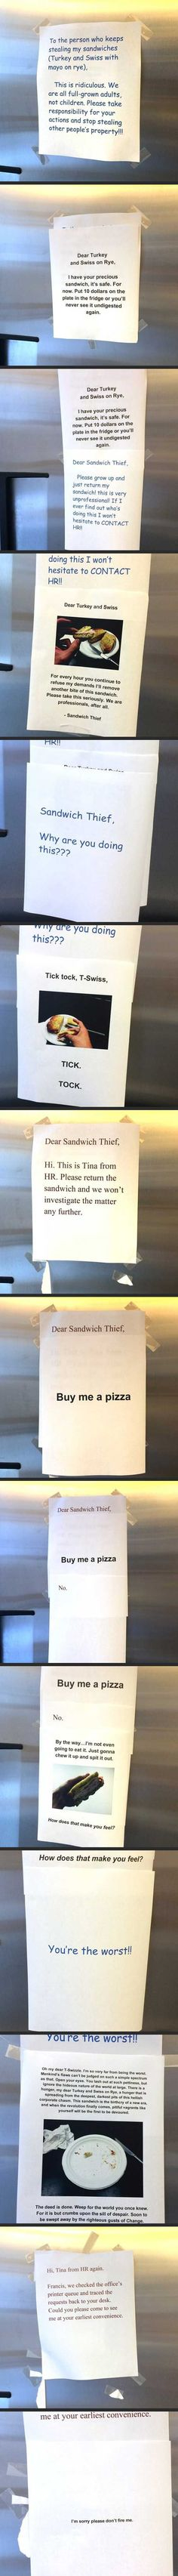 Not your standard office lunch thief.